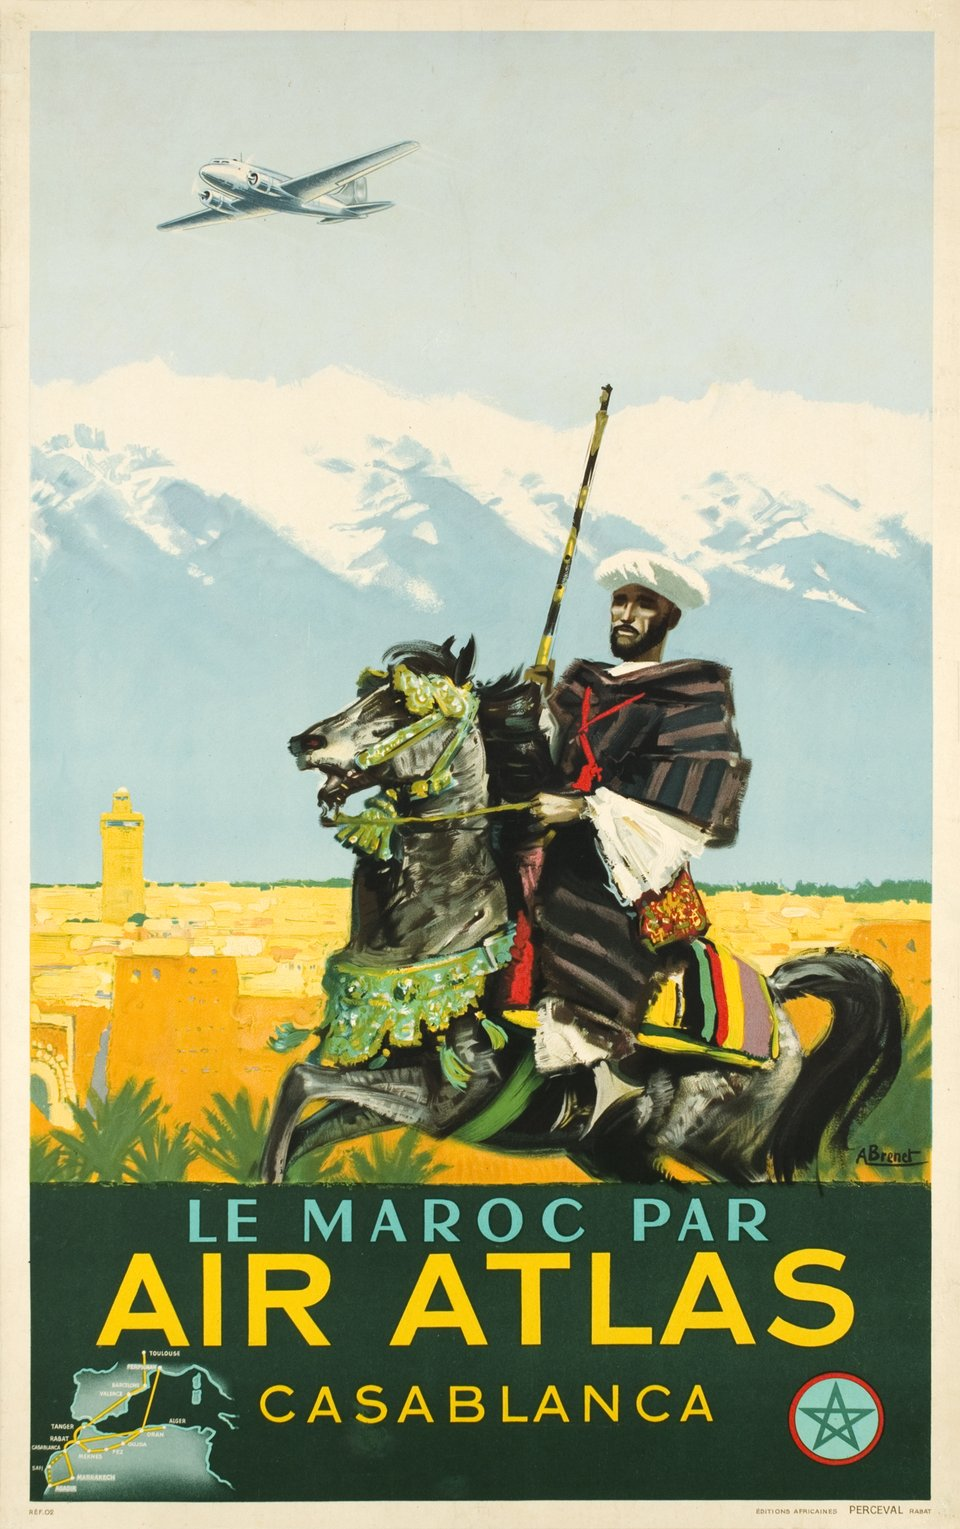 Air Atlas, le Maroc par Air Atlas, Casablanca – Vintage poster – Albert BRENET – 1950